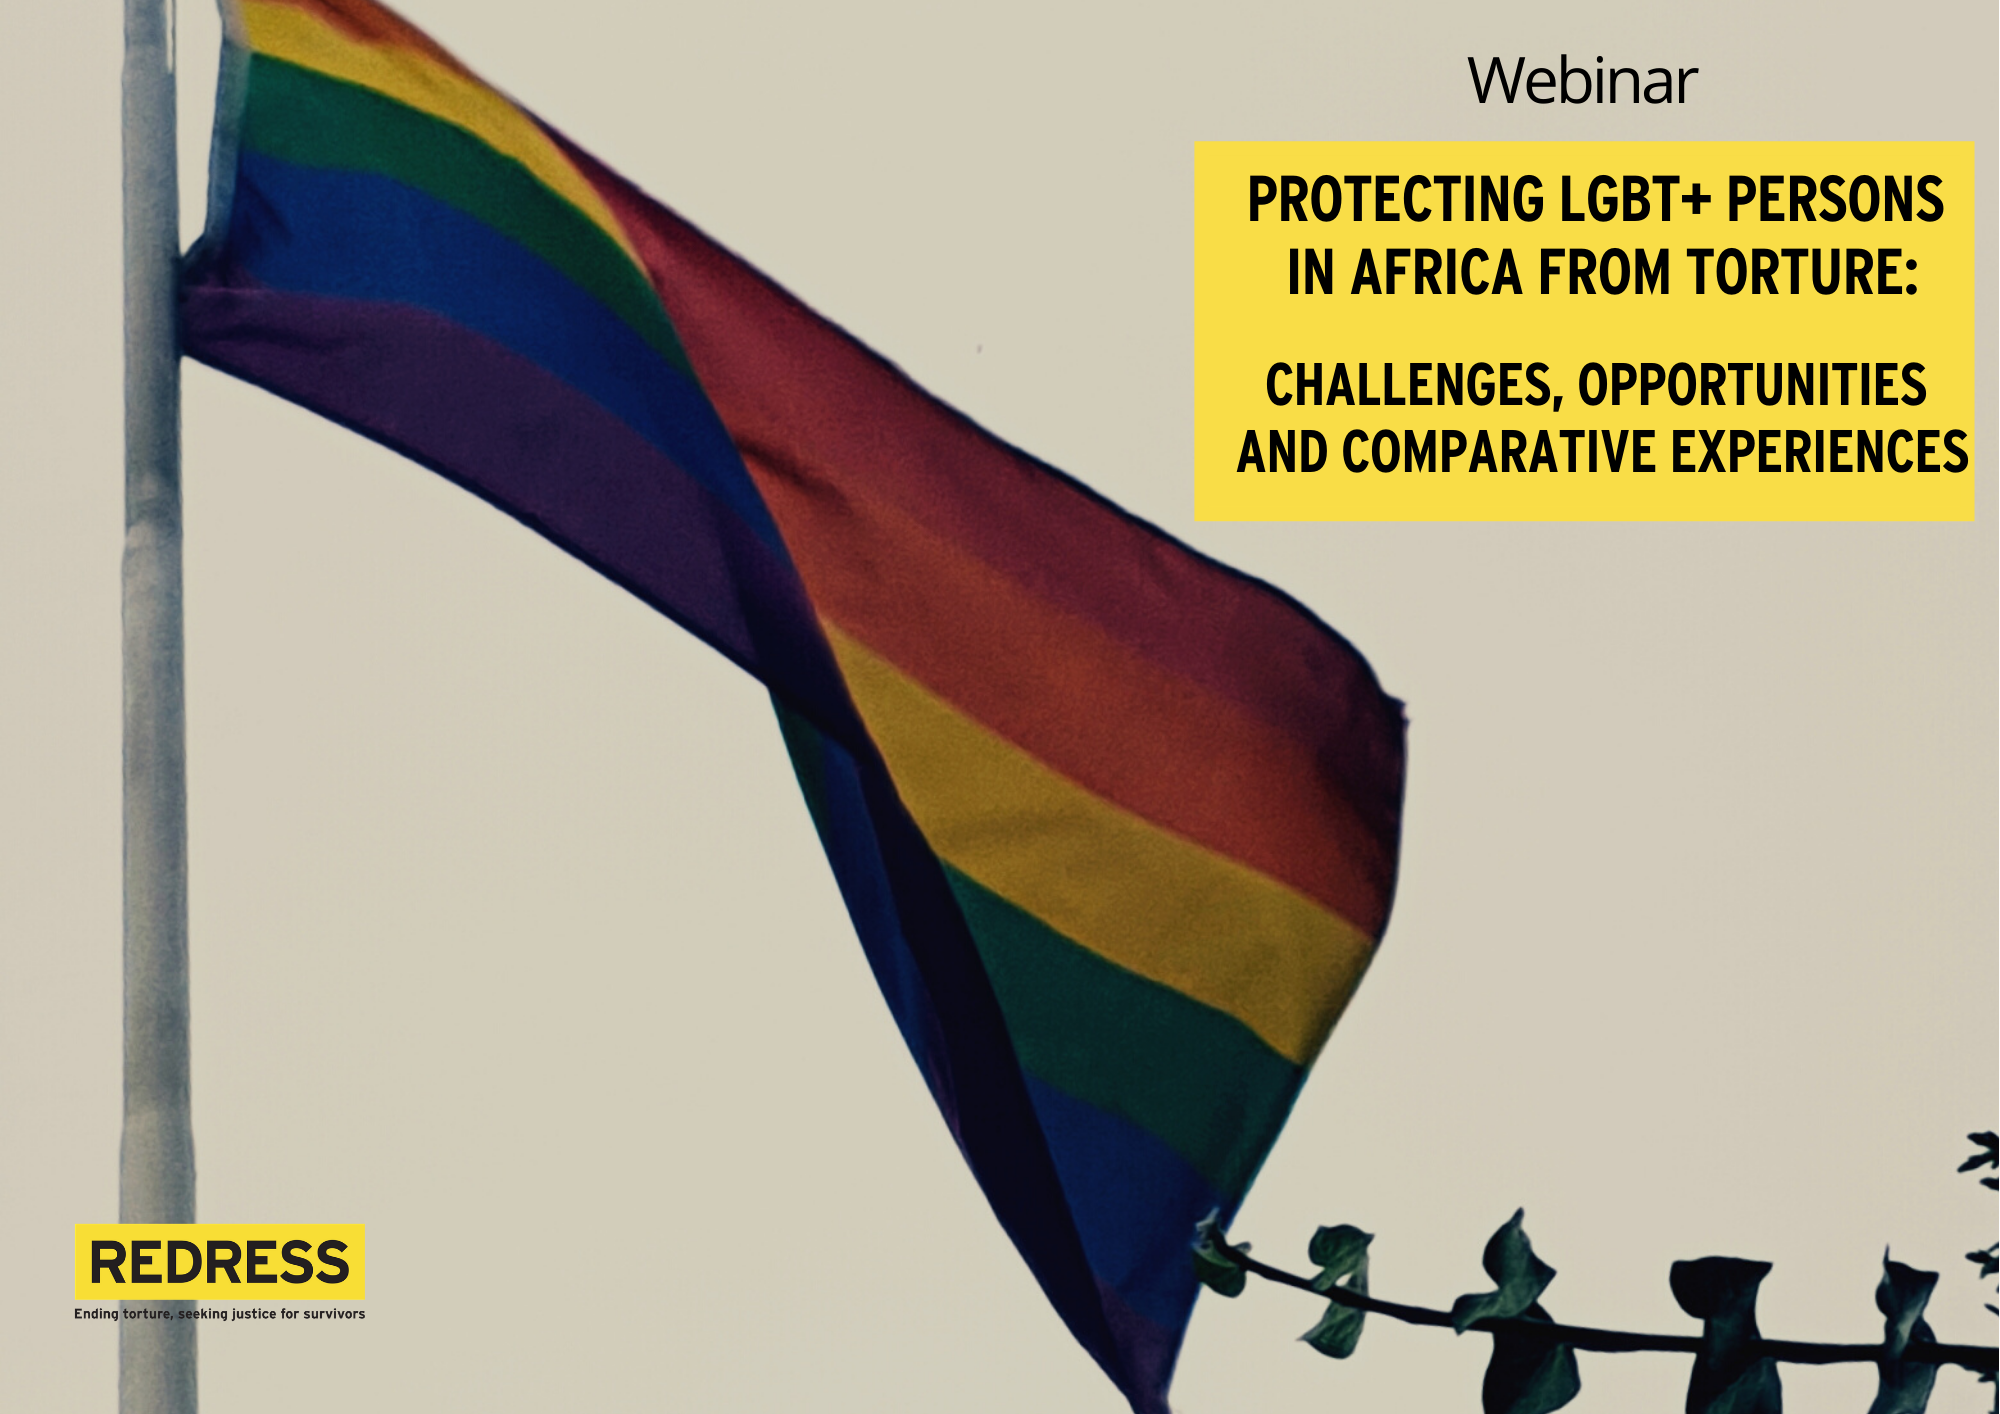 Webinar: Protecting LGBT+ Persons in Africa from Torture